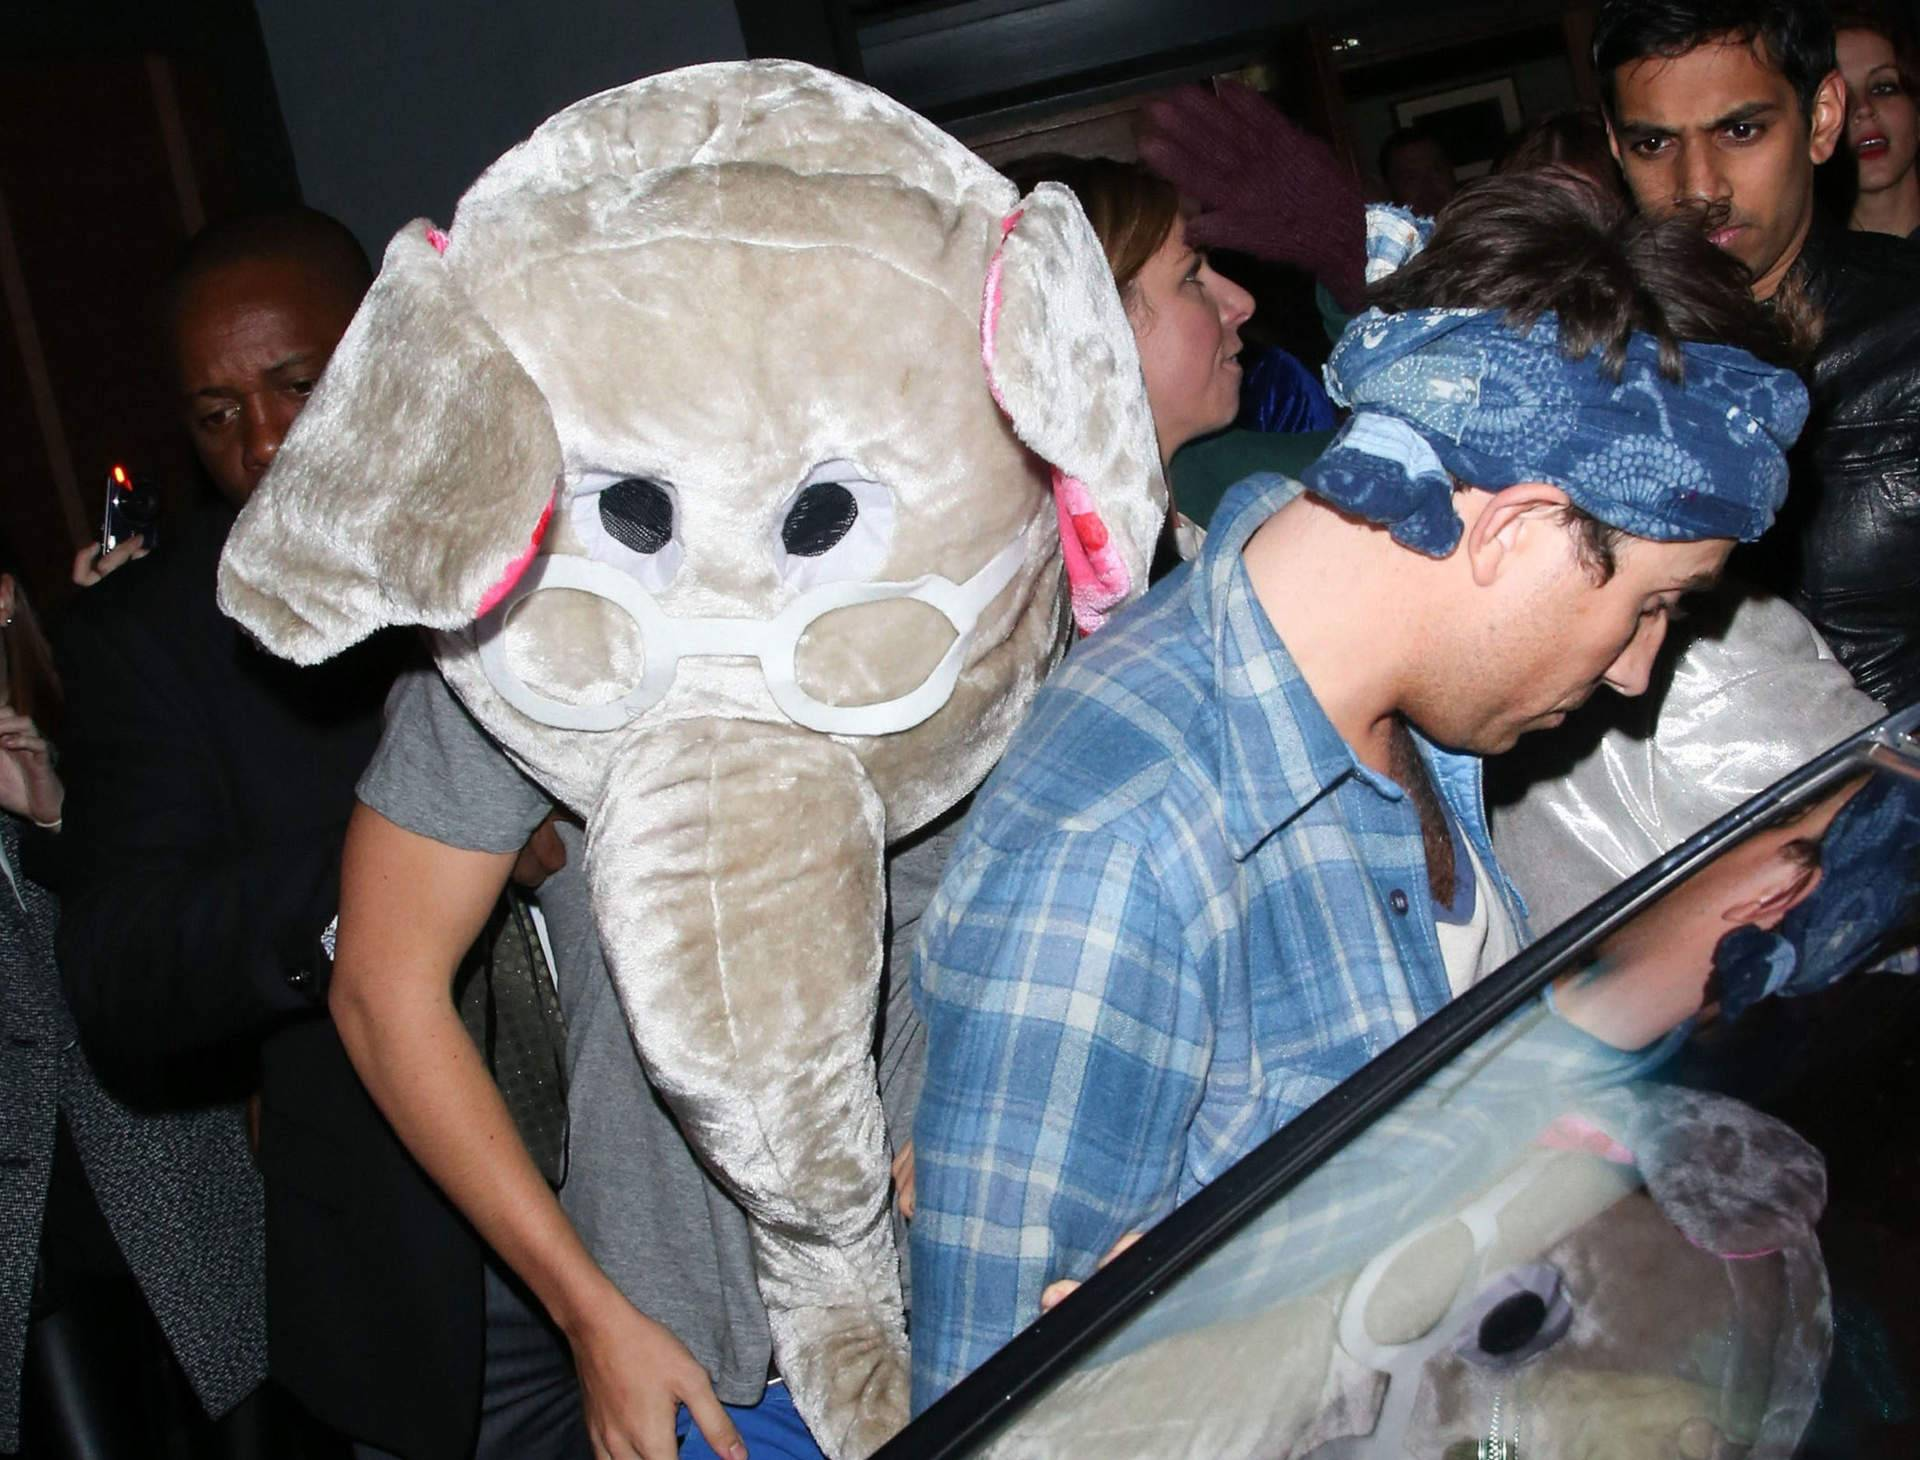 And Now Harry Styles Leaving a Club Wearing an Elephant Head | The ...